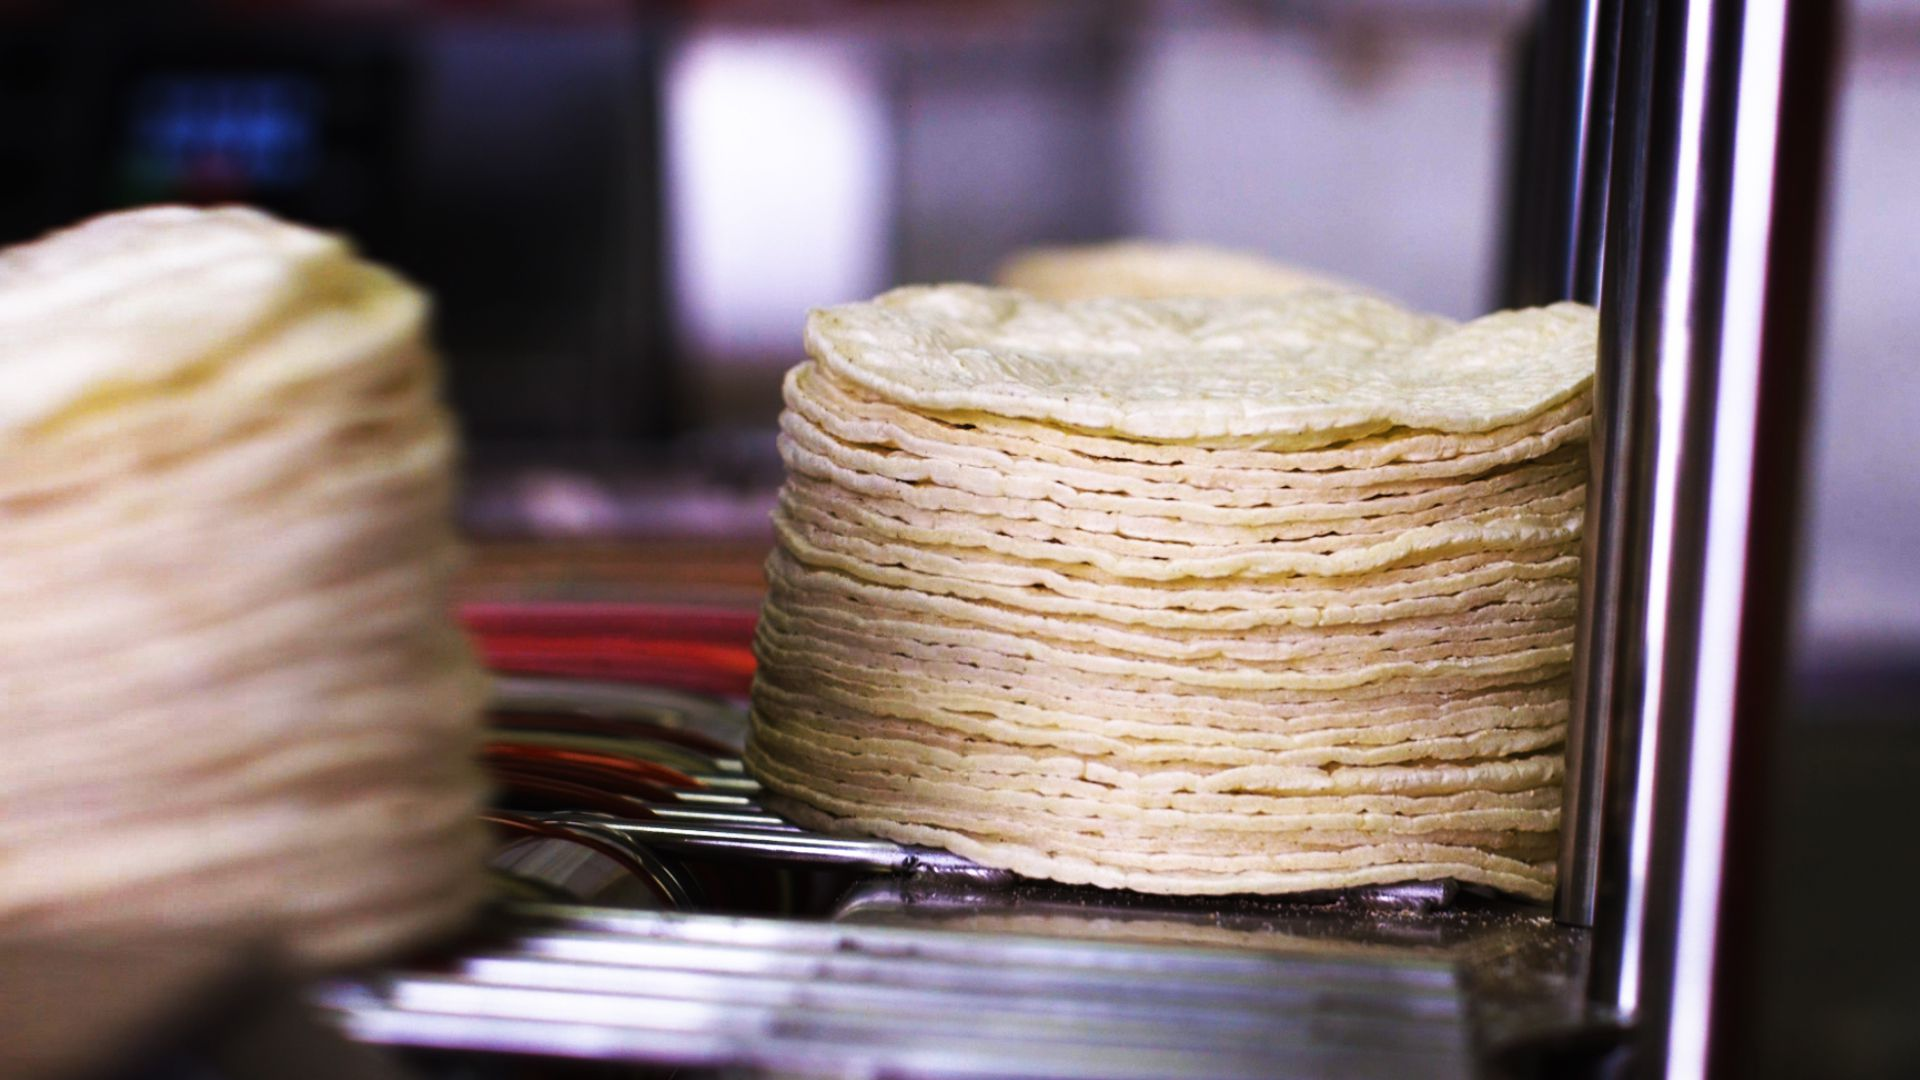 Watch: This Brooklyn Tortilla Factory Makes Over One Million